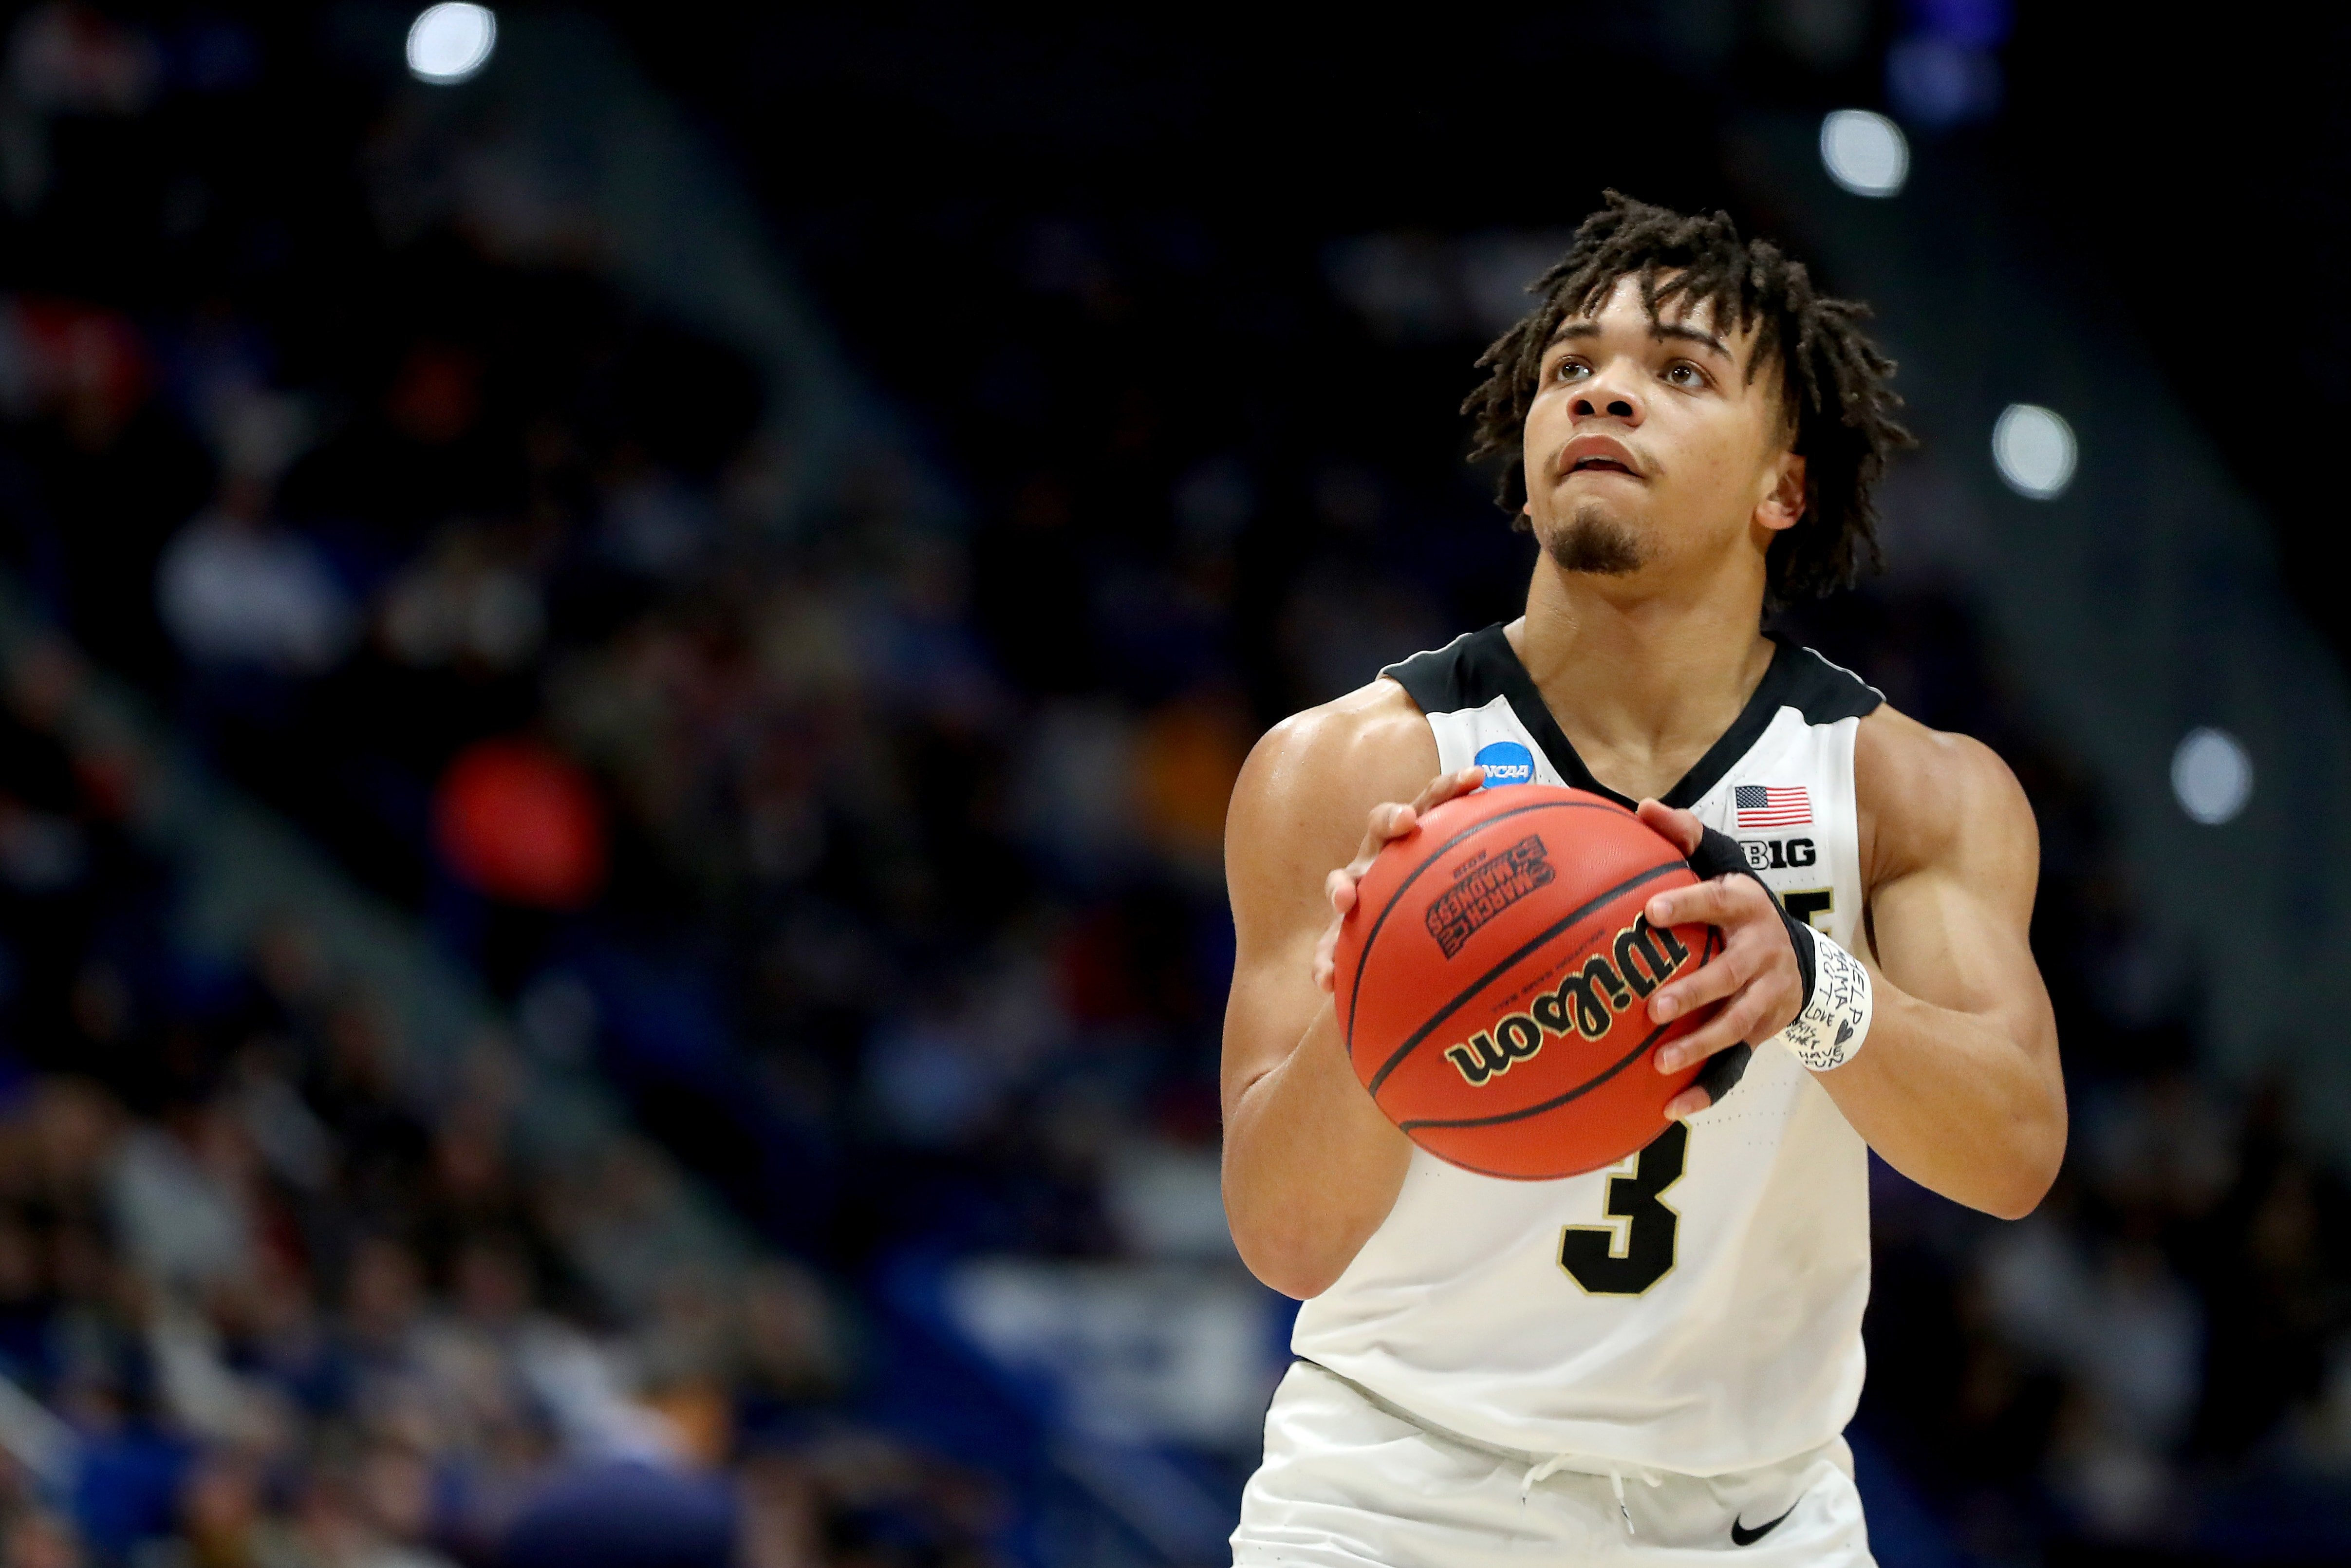 Purdue's Carsen Edwards drafted by Celtics with No. 33 overall pick